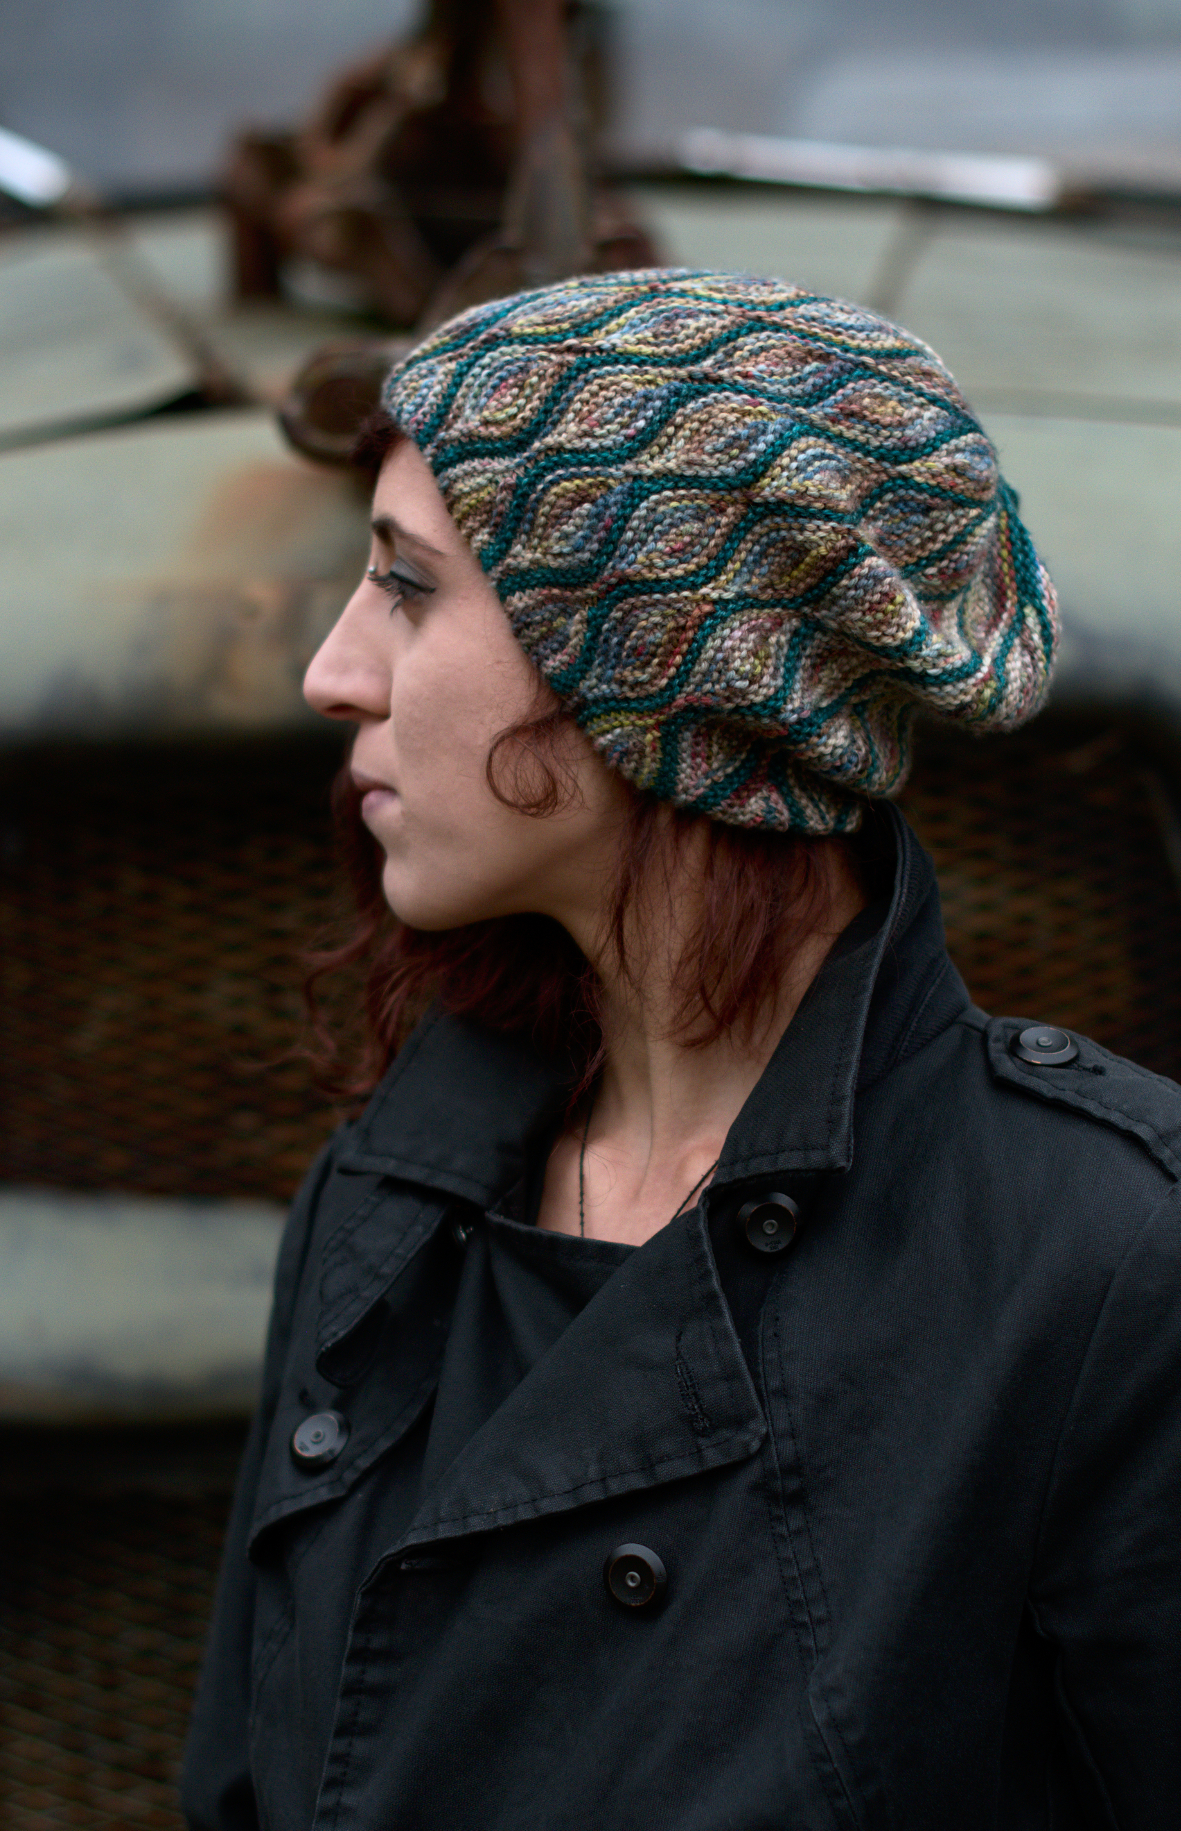 Rhinebeck hat sideways knit short row slouchy hat hand knitting pattern